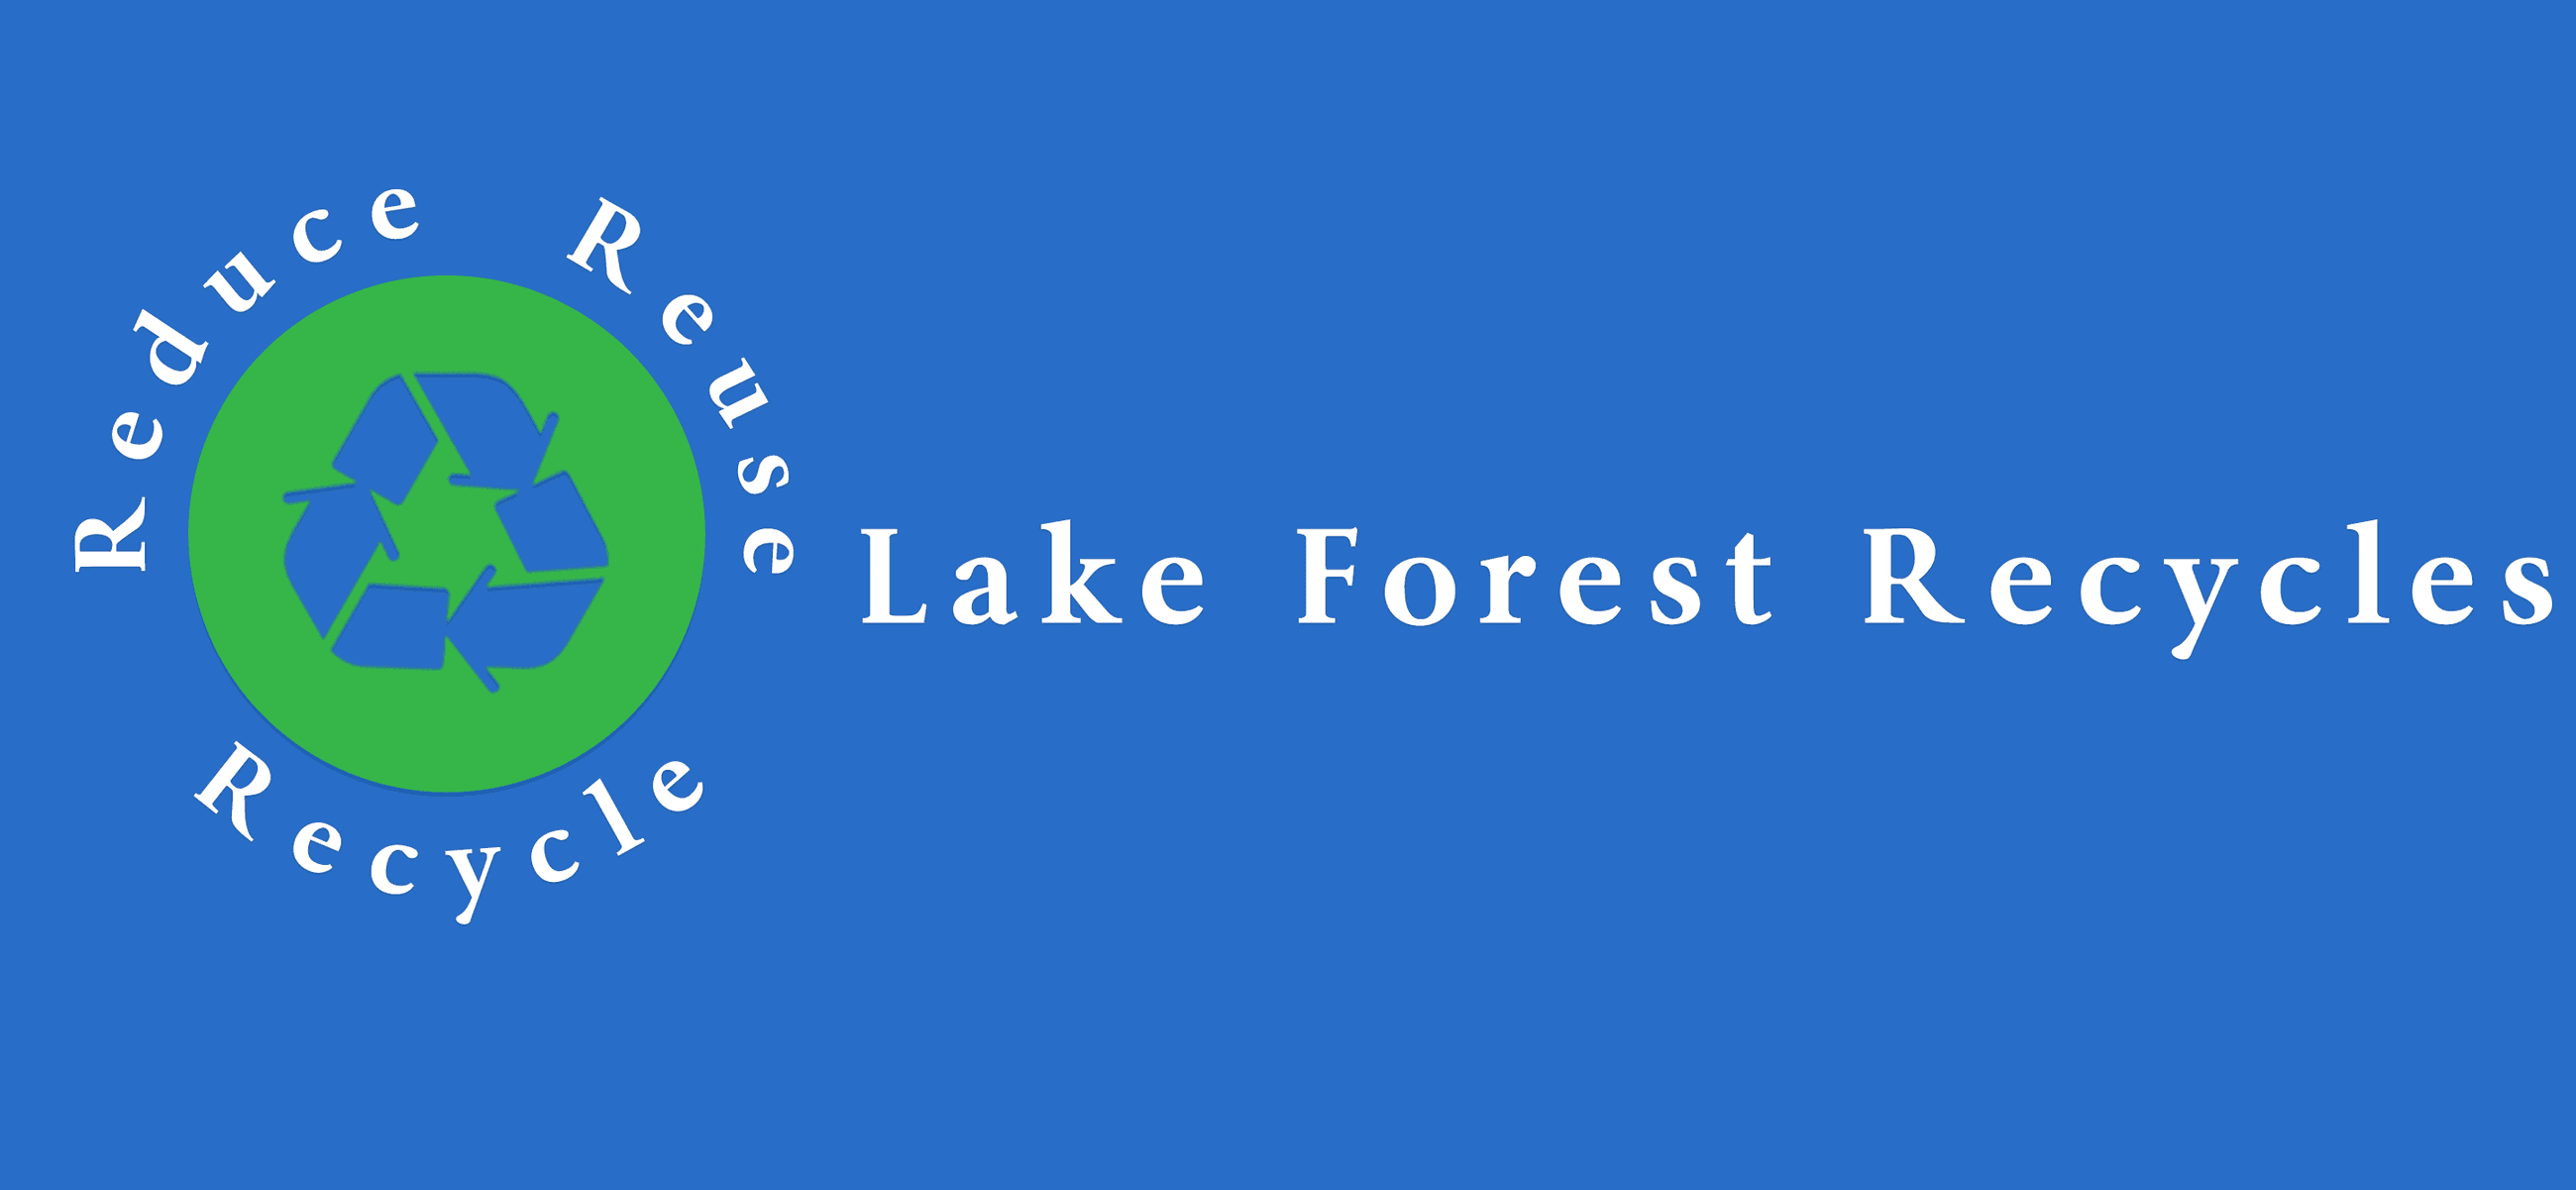 Lake Forest Recycles